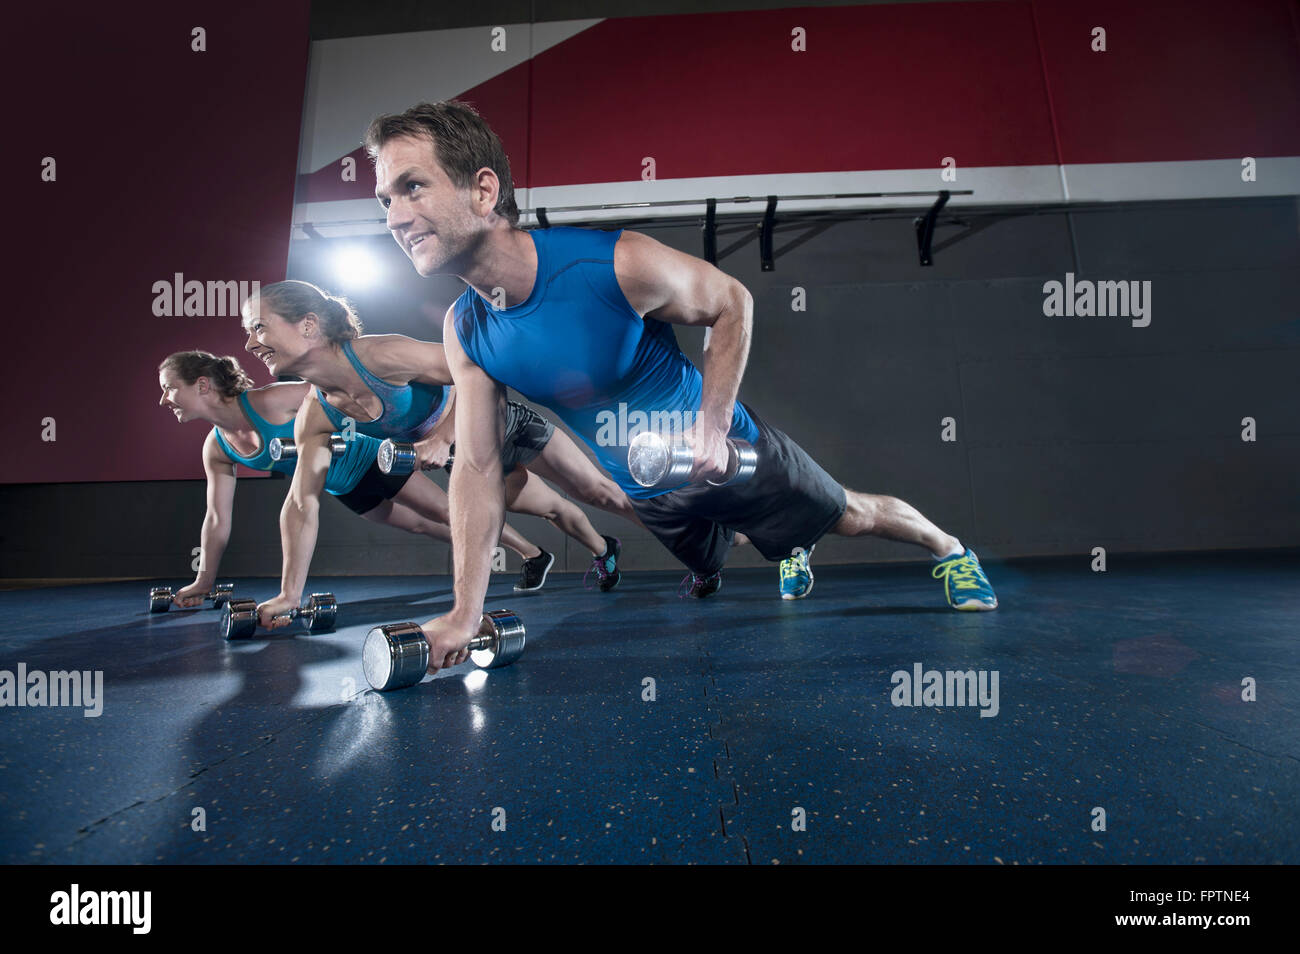 Athletes doing push ups in the gym by holding dumbbell, Bavaria, Germany - Stock Image